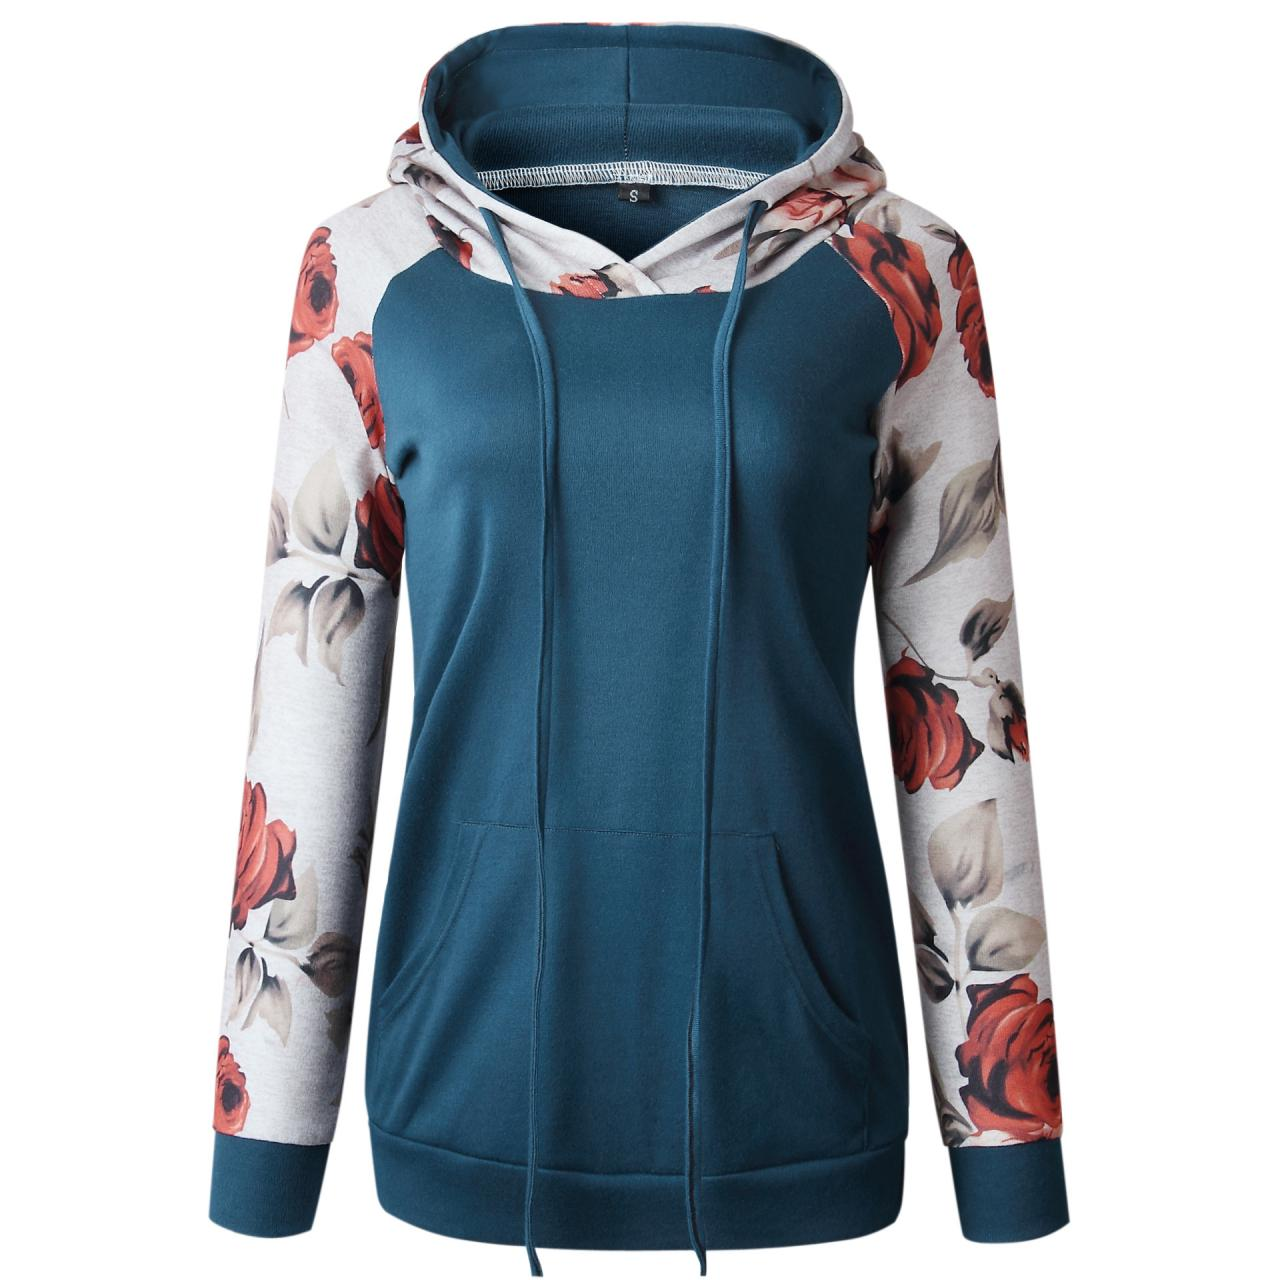 Women Hoodies Autumn Floral Printed Patchwork Long Sleeve Drawstring Hooded Casual Sweatshirt blue